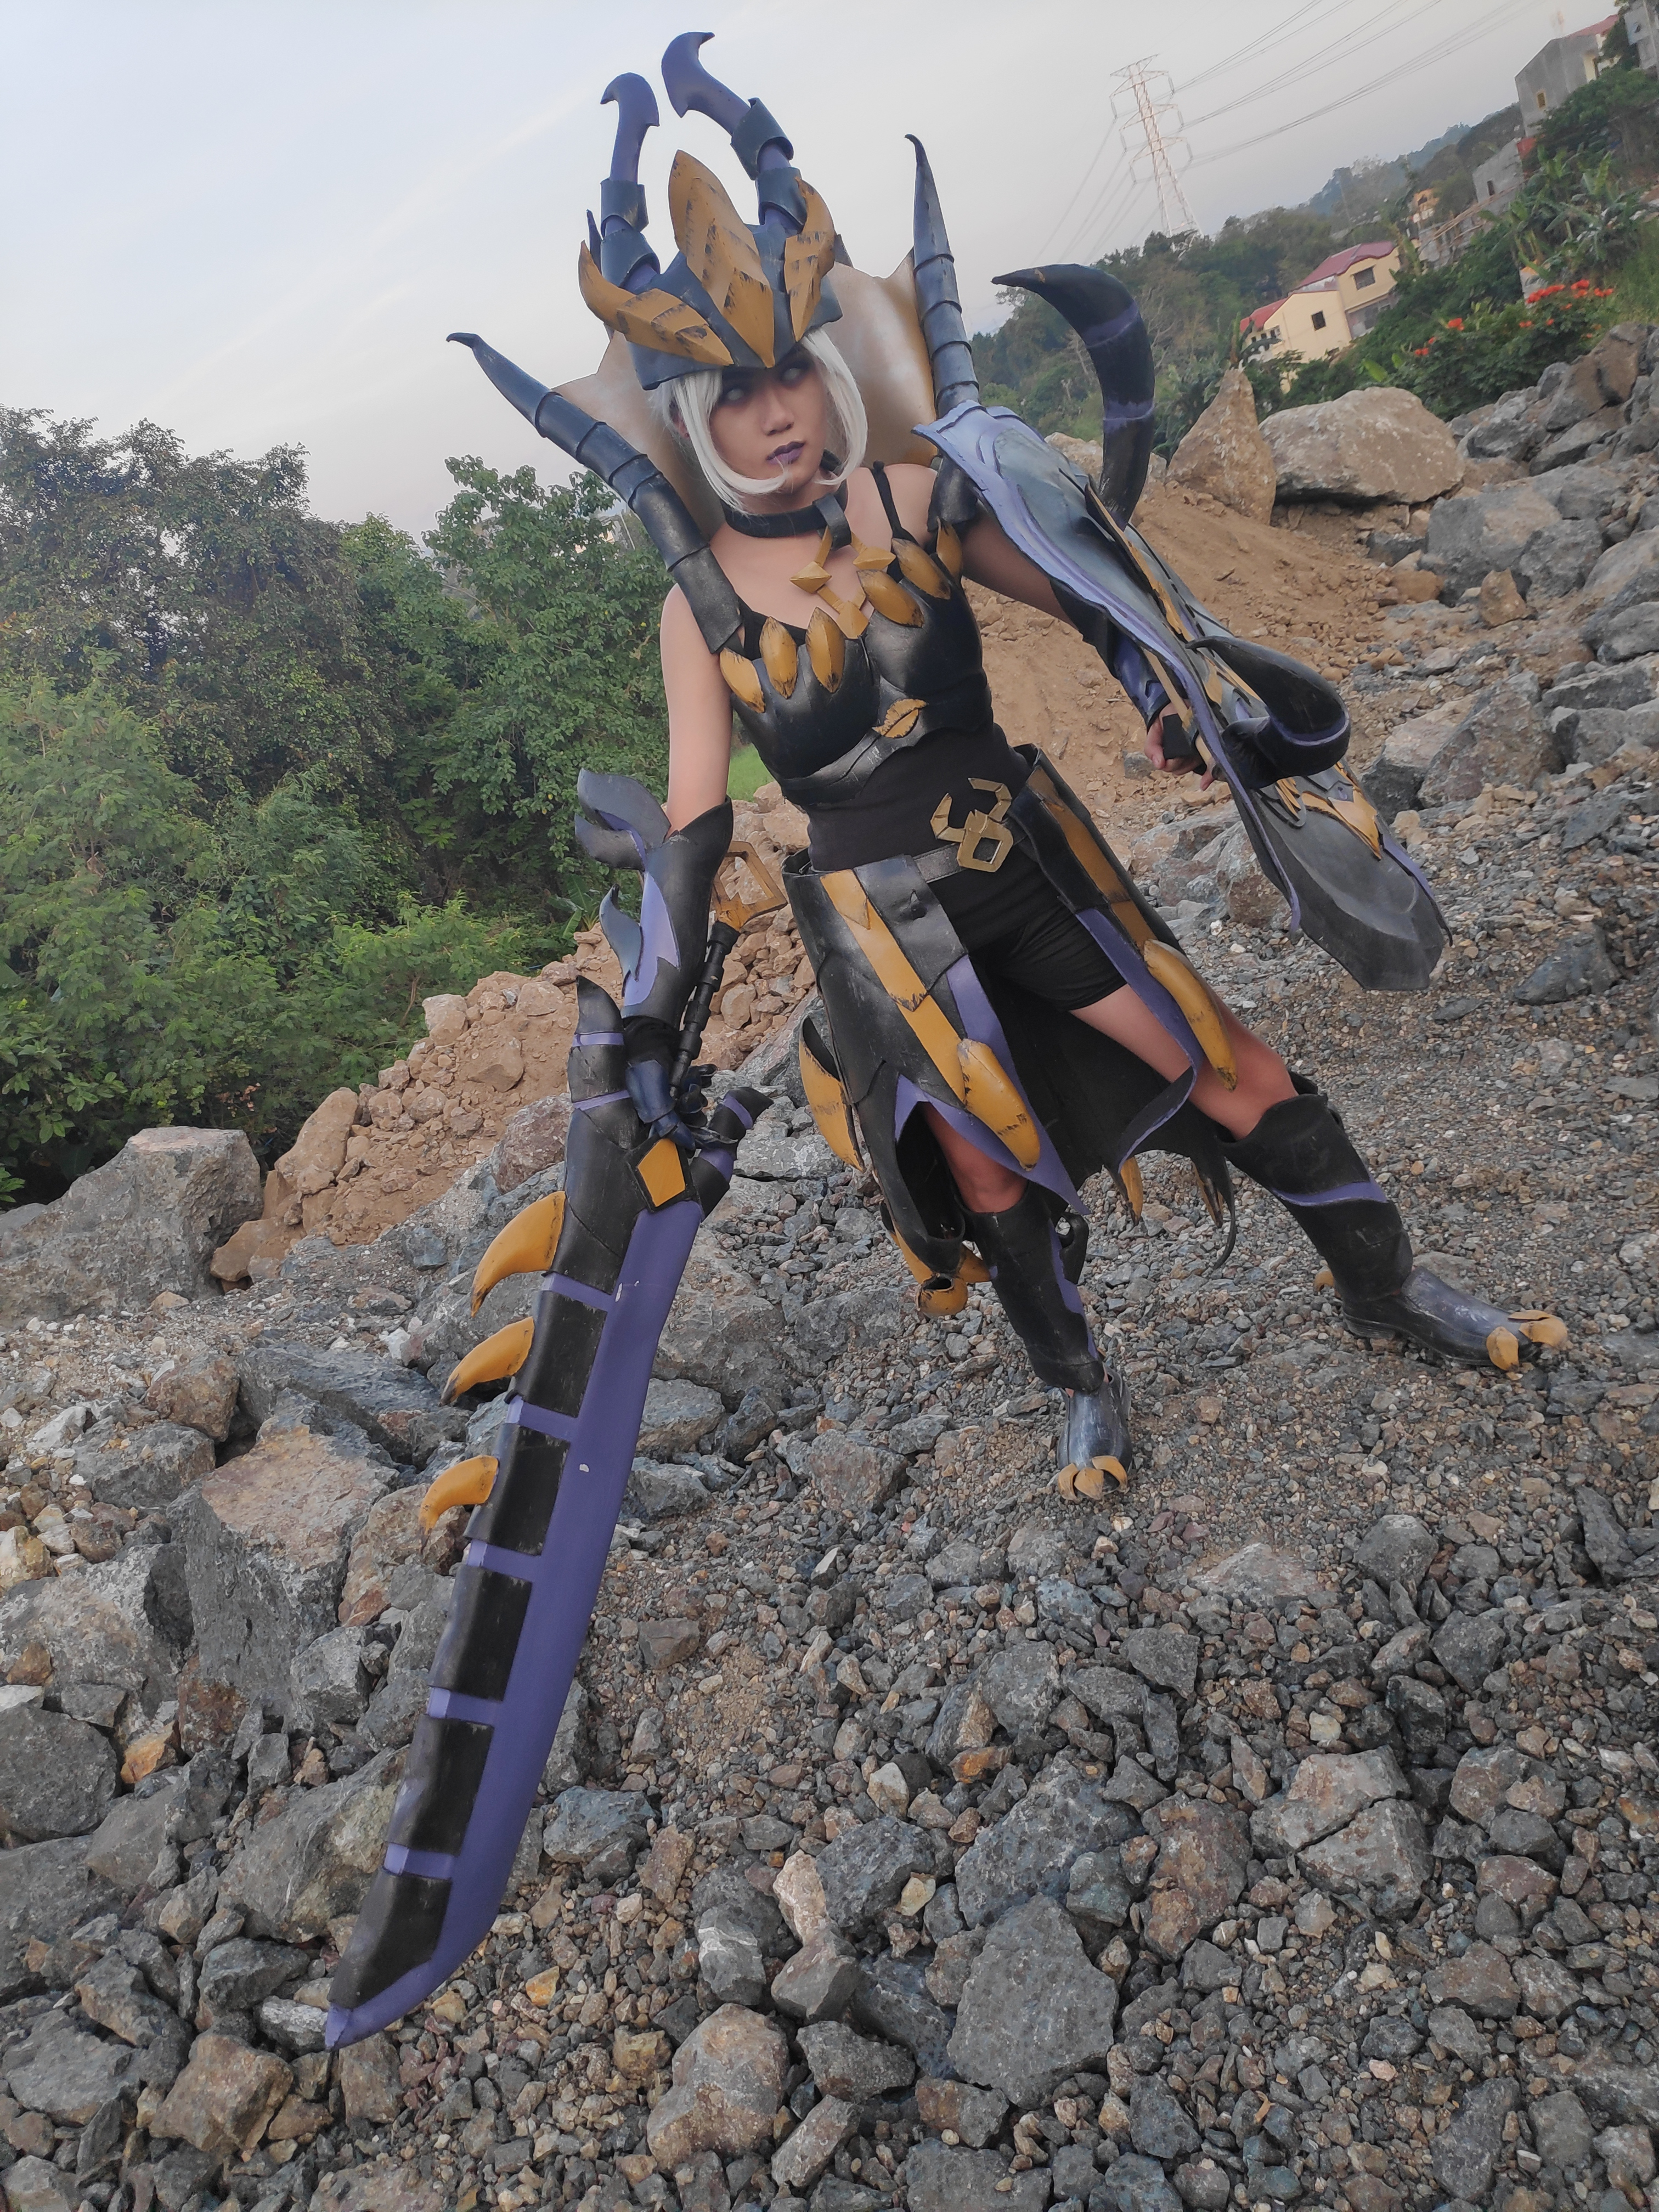 Armored female cosplayer